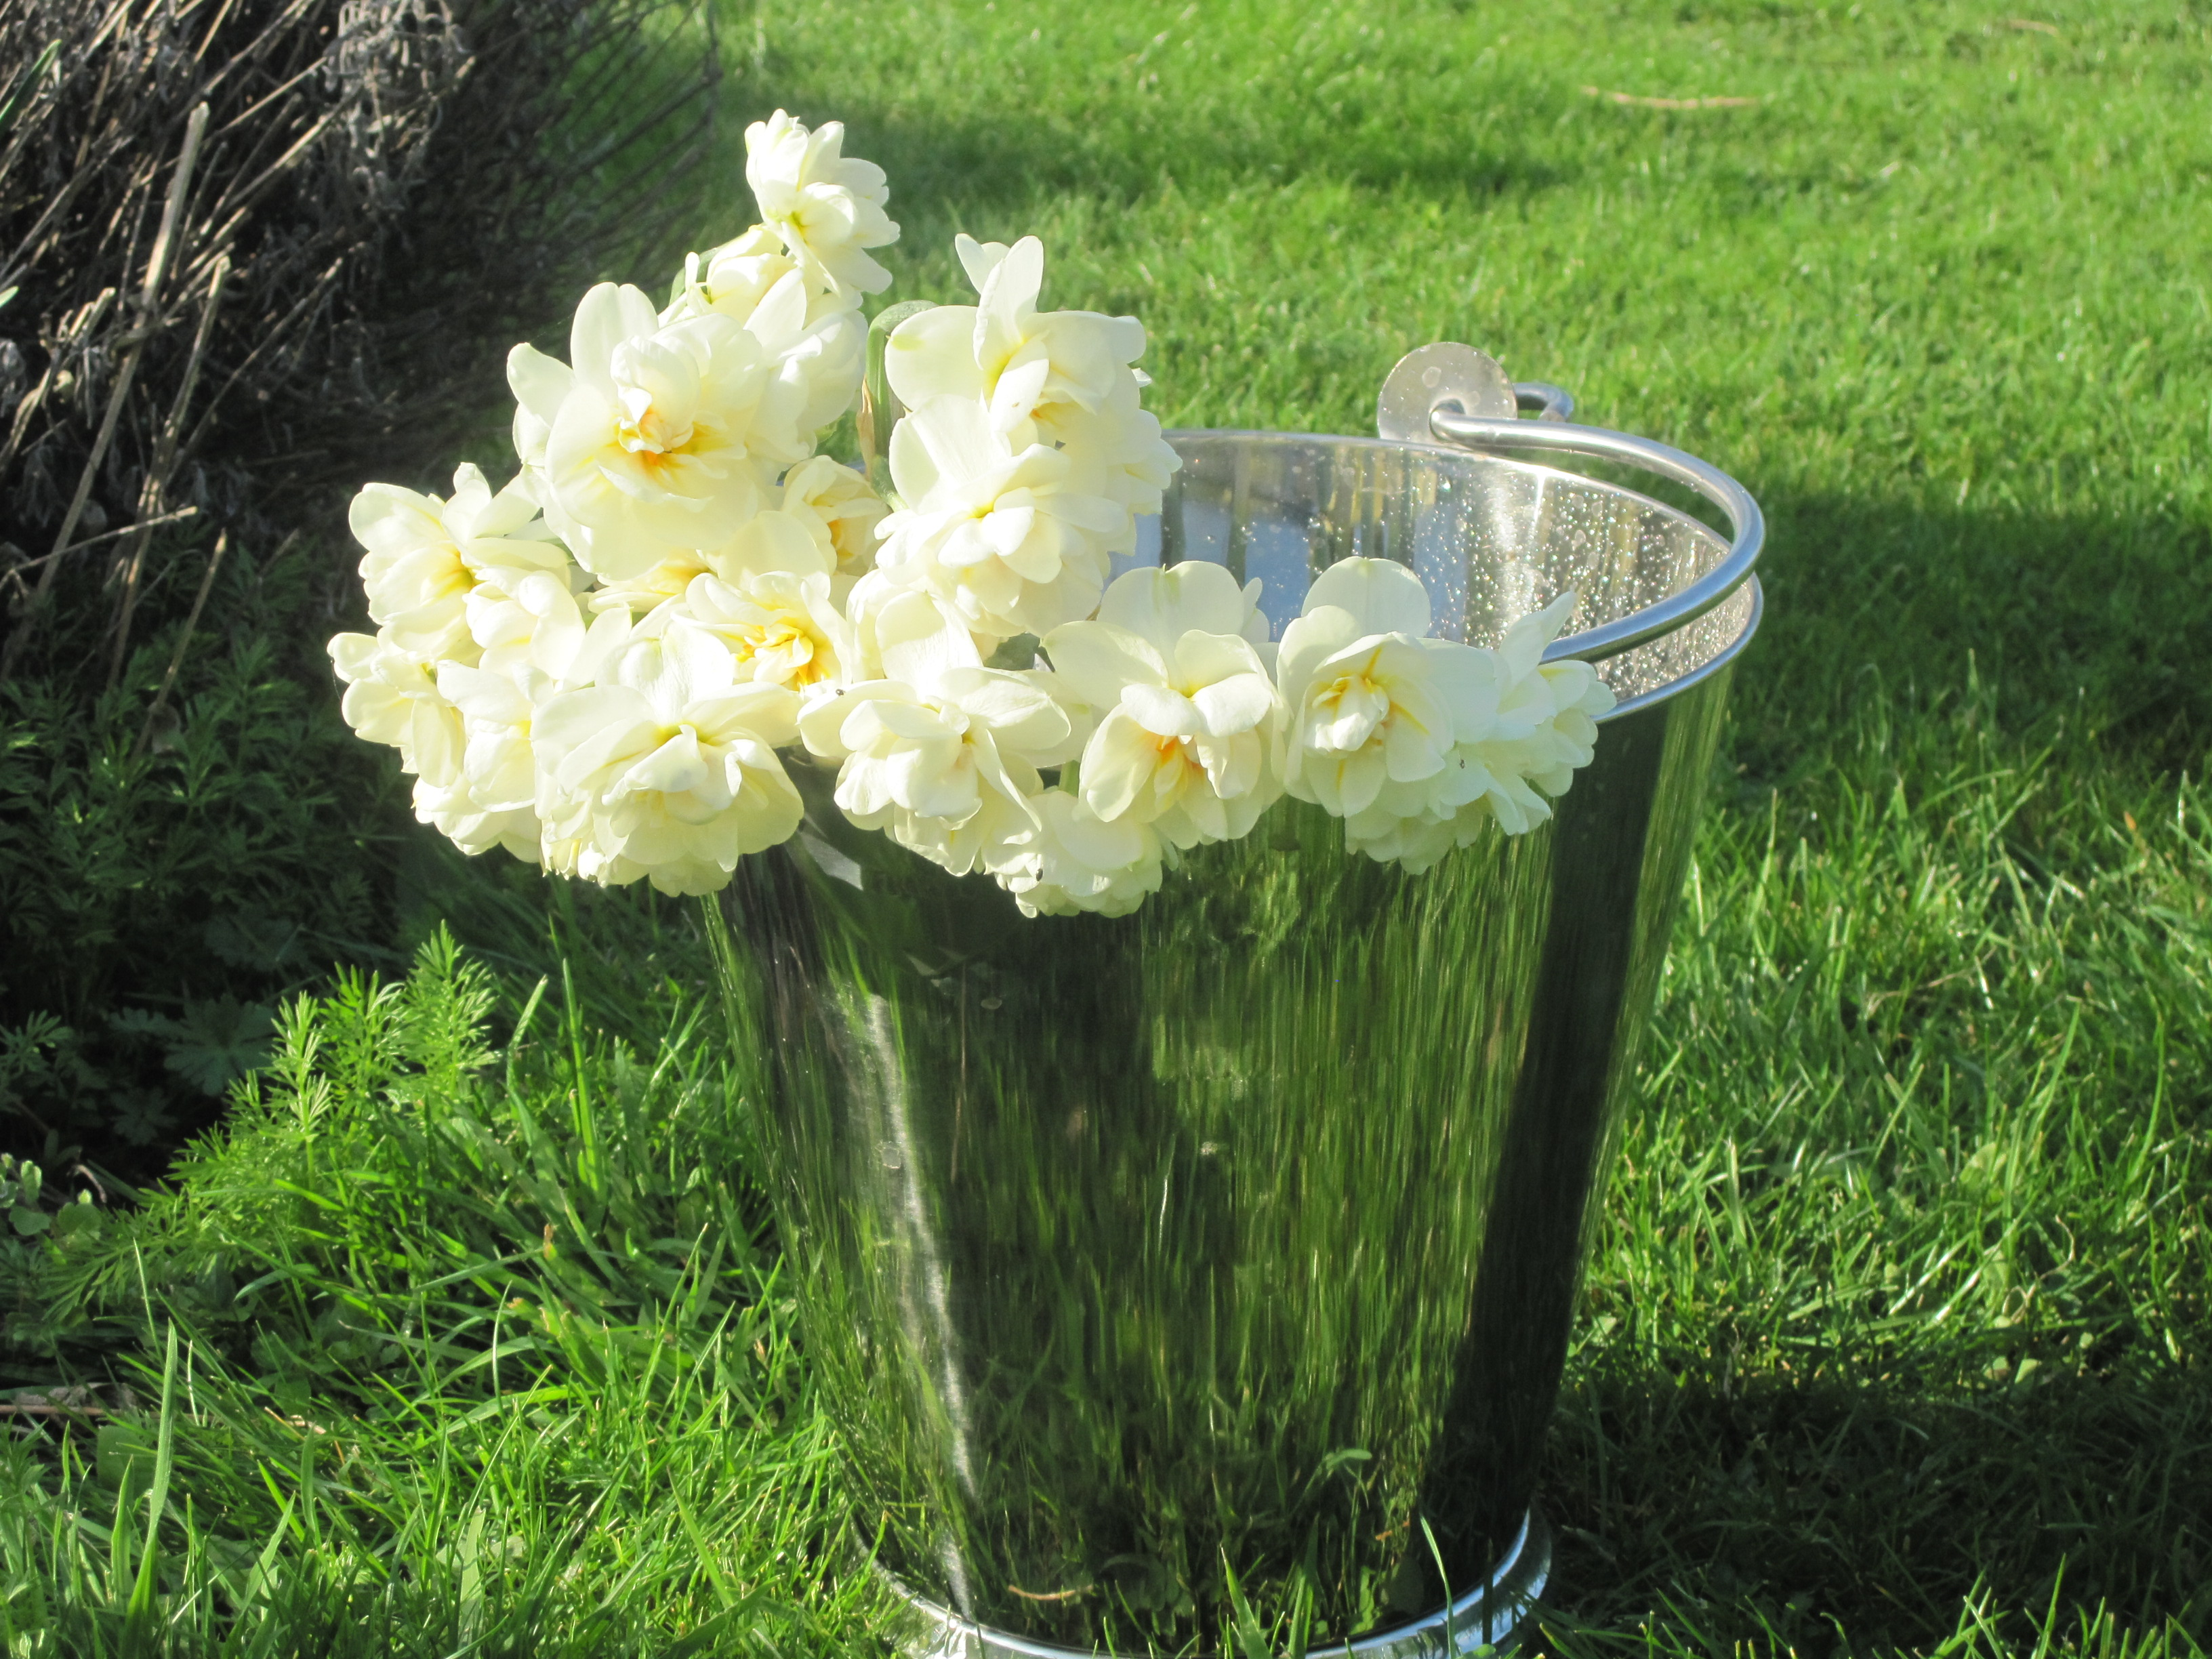 Maximising the vase life of your cut flowers sarah raven once you have cut the flowers you want dont immediately arrange them in a vase put them in a cool place in their bucket of water and let them recover for reviewsmspy